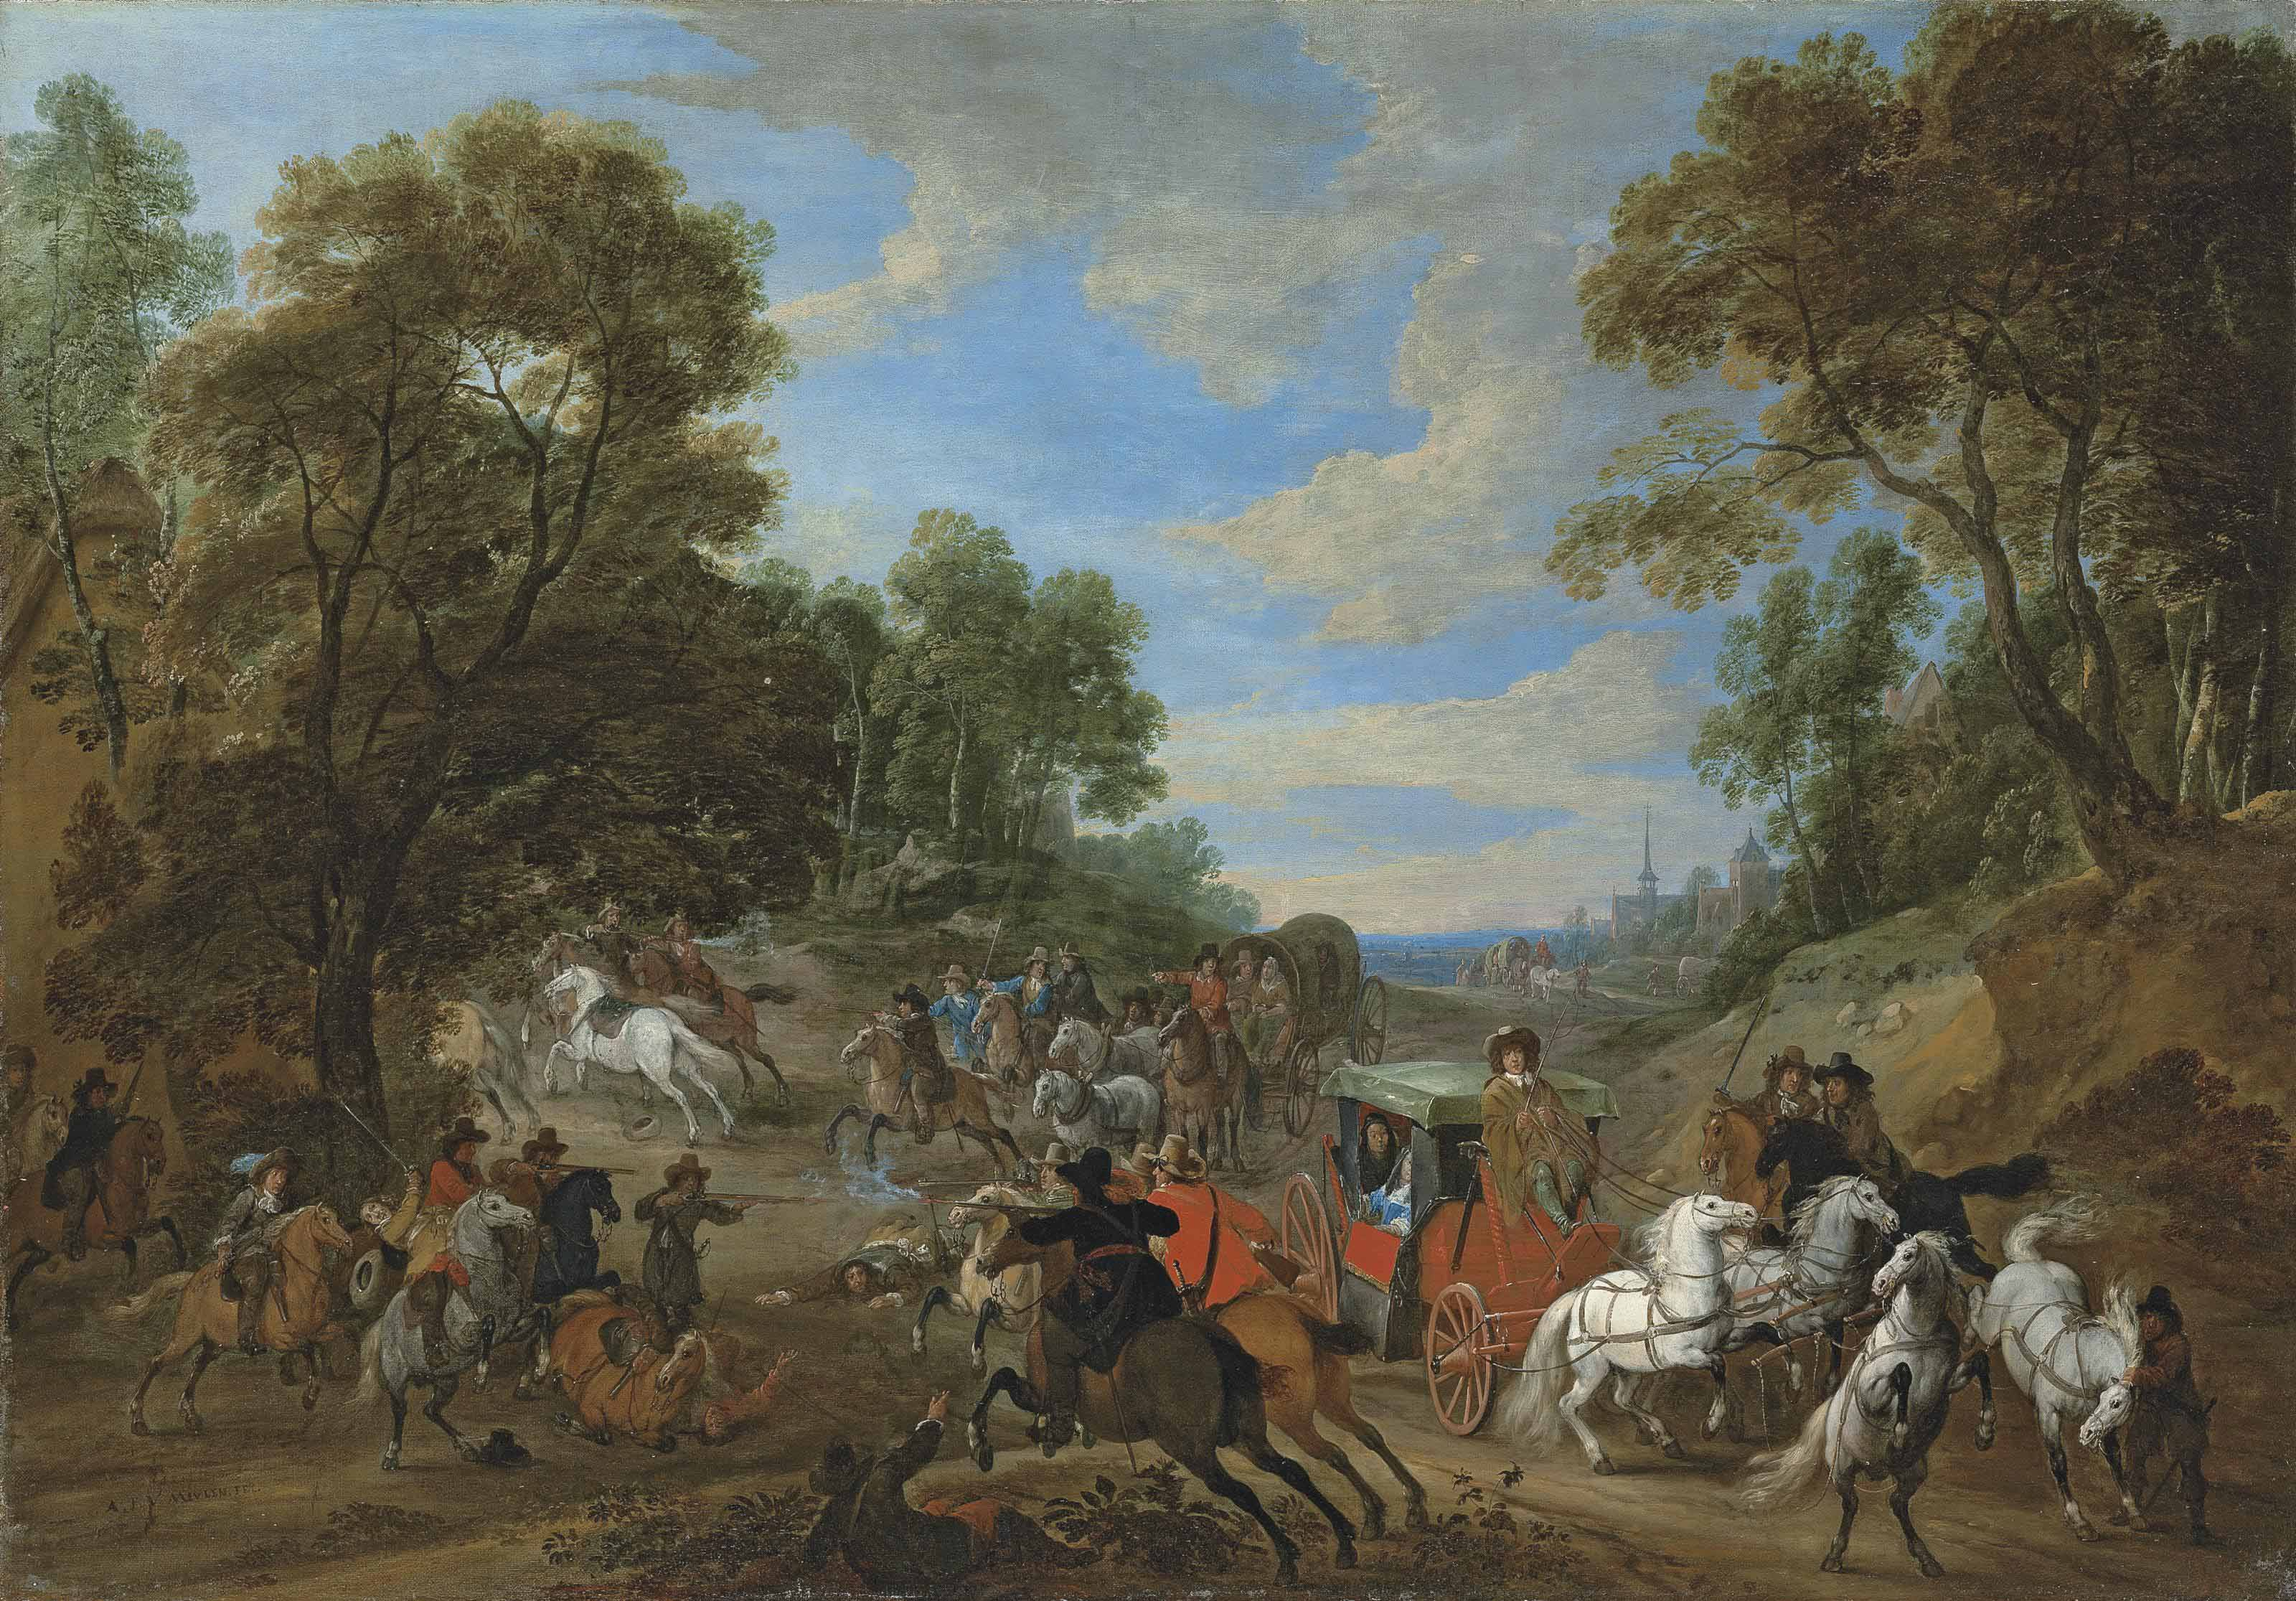 A wooded landscape with a coach being ambushed in a clearing